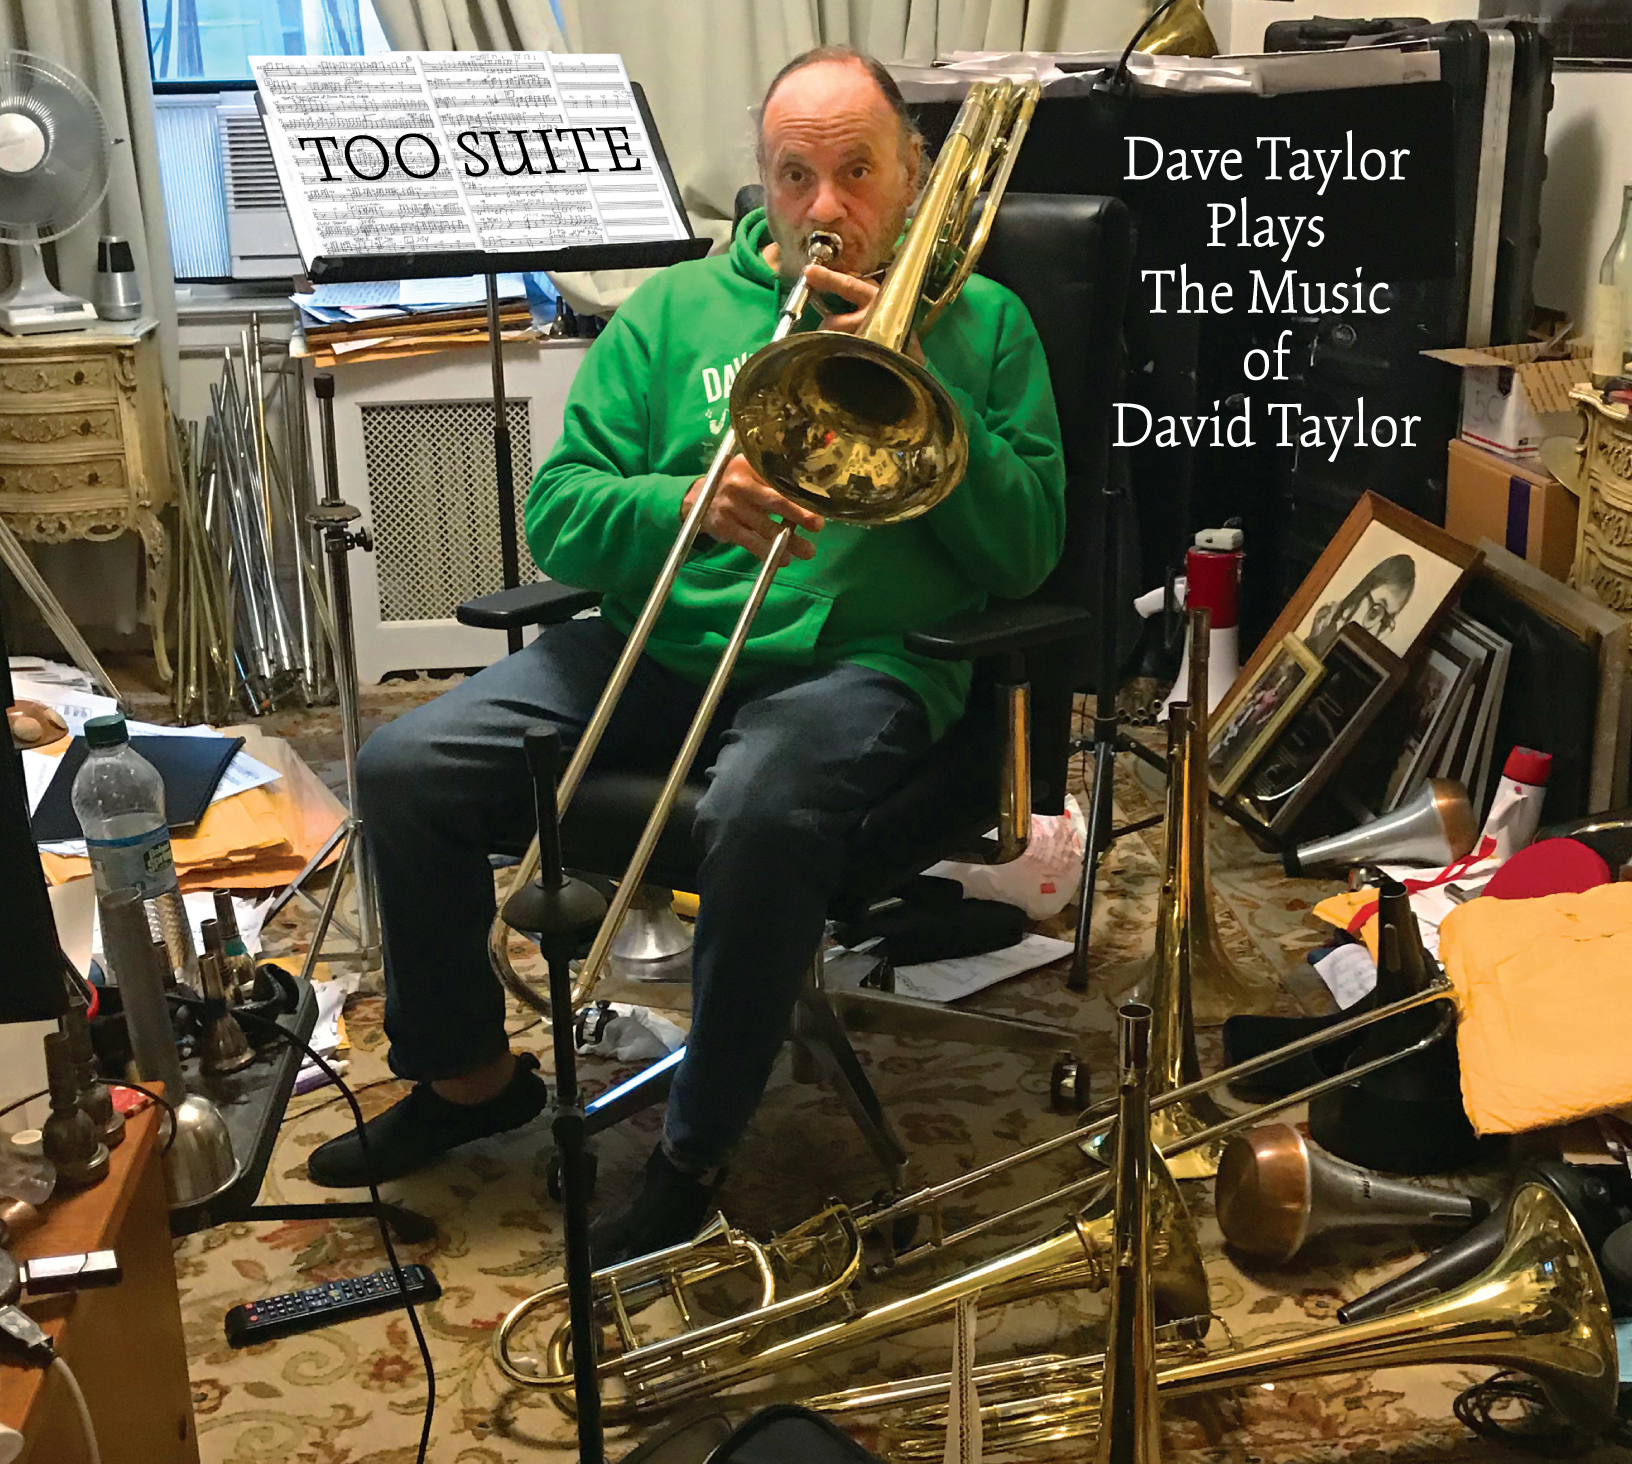 Dave Taylor Plays the Music of David Taylor